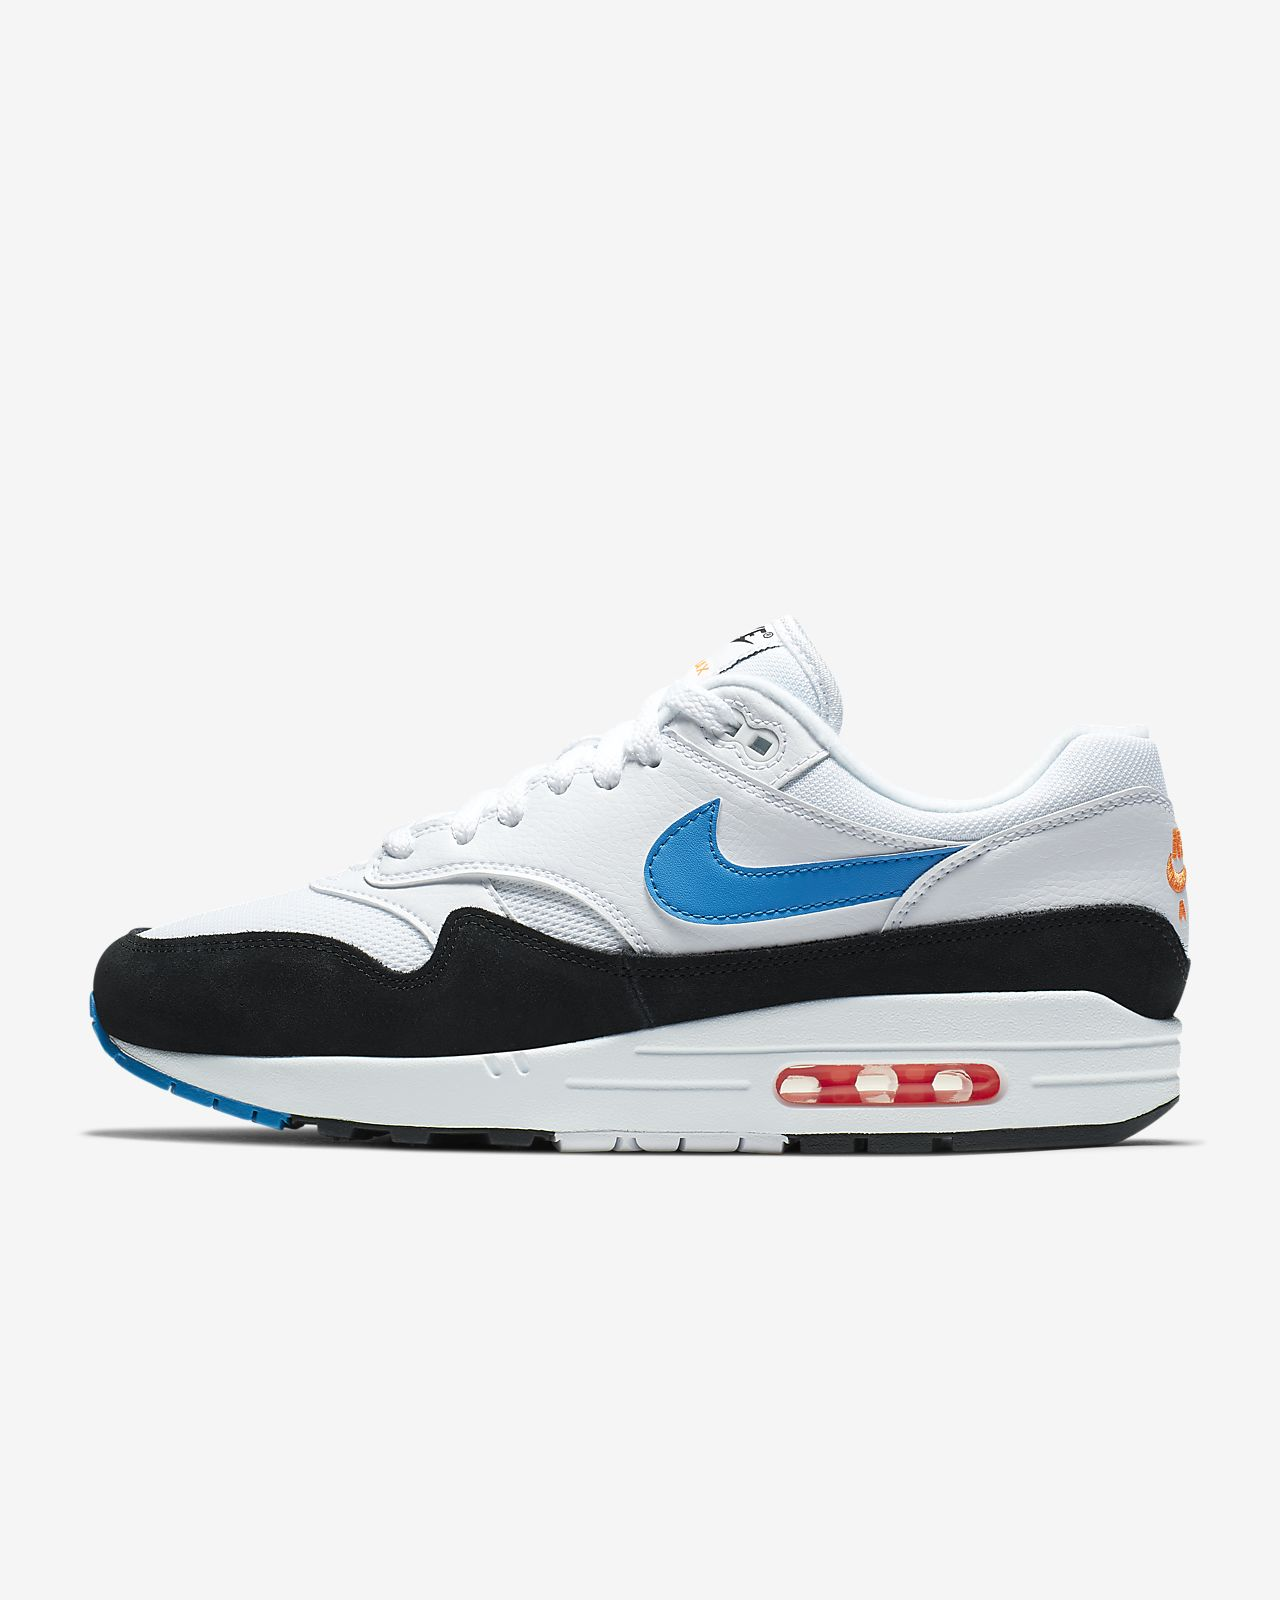 92bfa1bfcc4c Nike Air Max 1 Men s Shoe. Nike.com